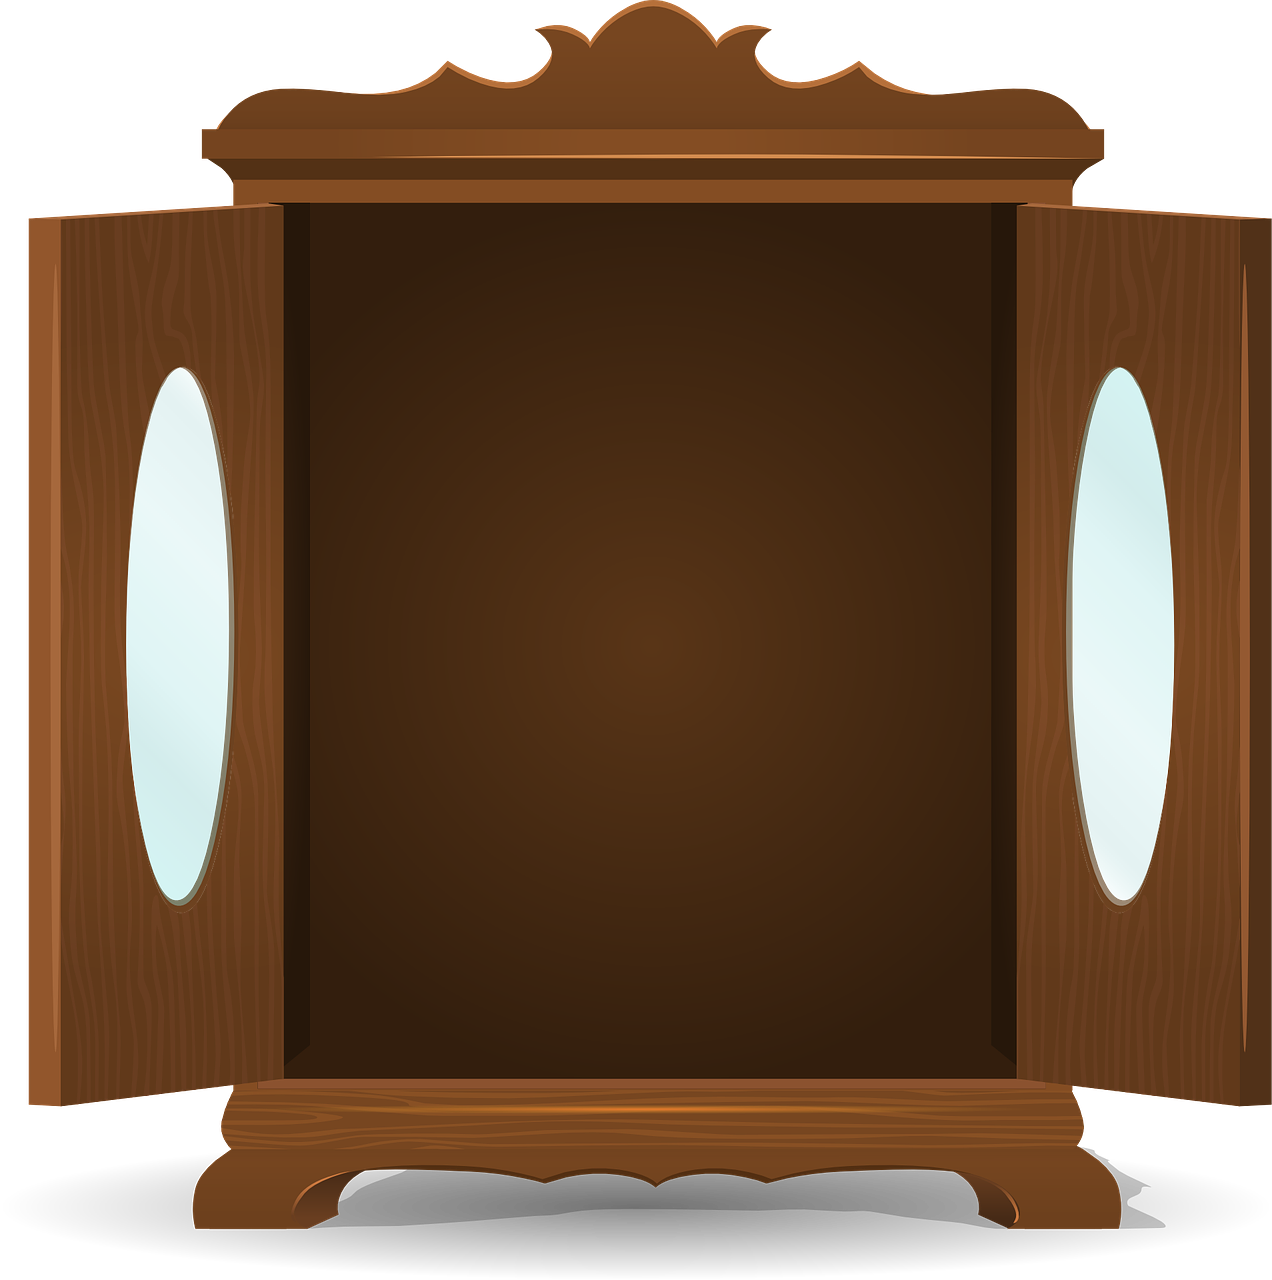 Empty bedroom clipart images gallery for free download.